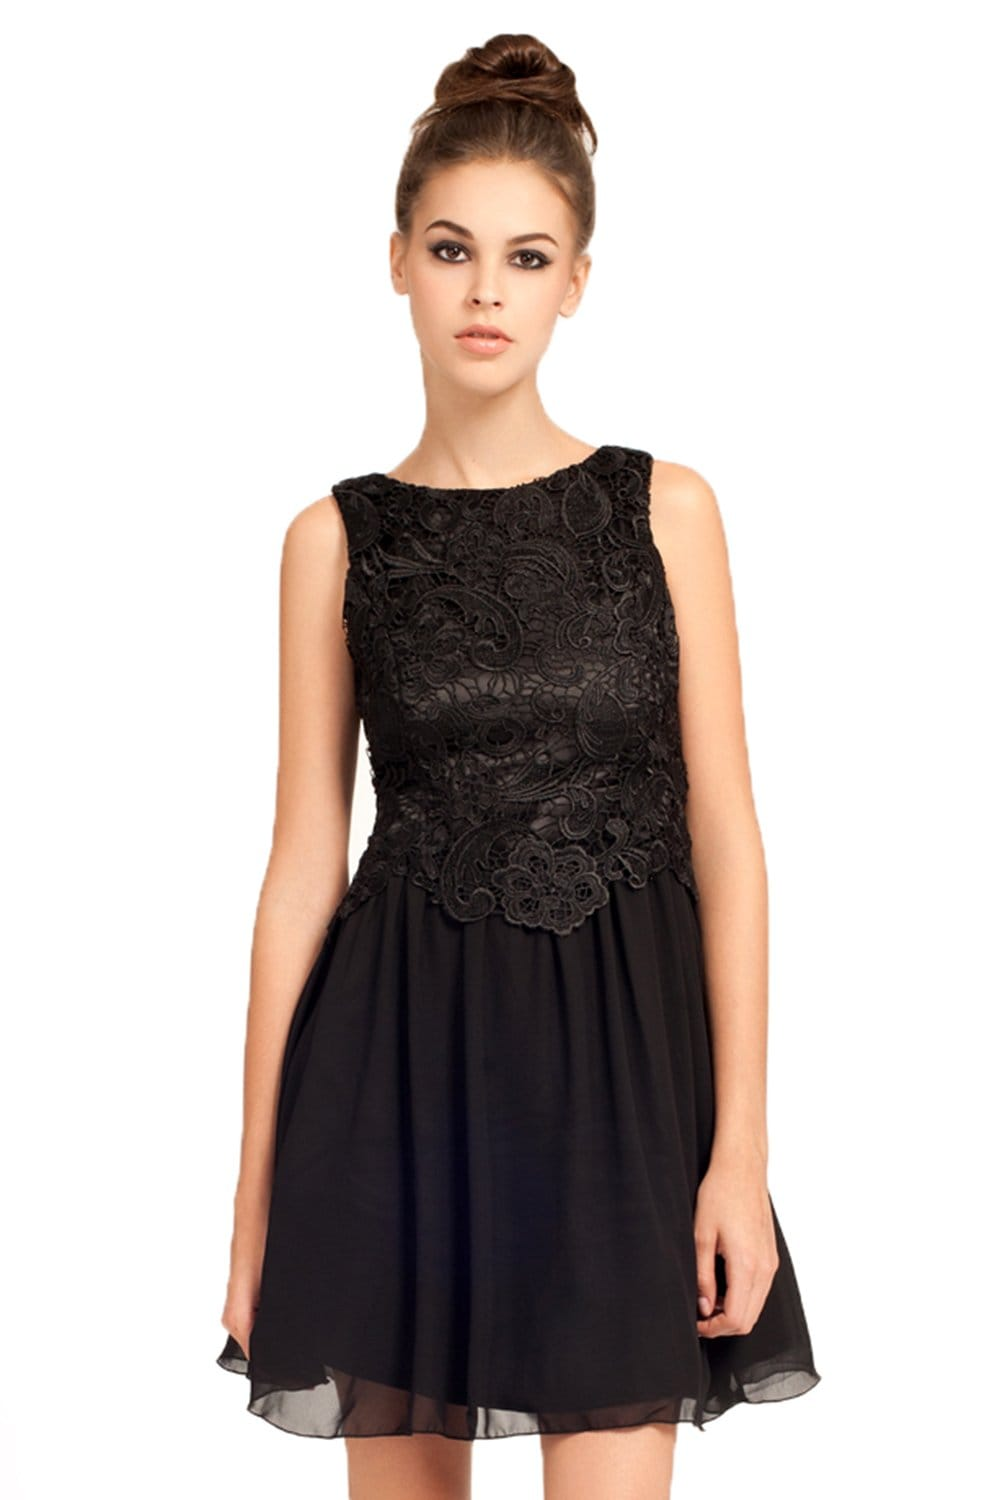 Free shipping and returns on Women's Lace Dresses at ragabjv.gq